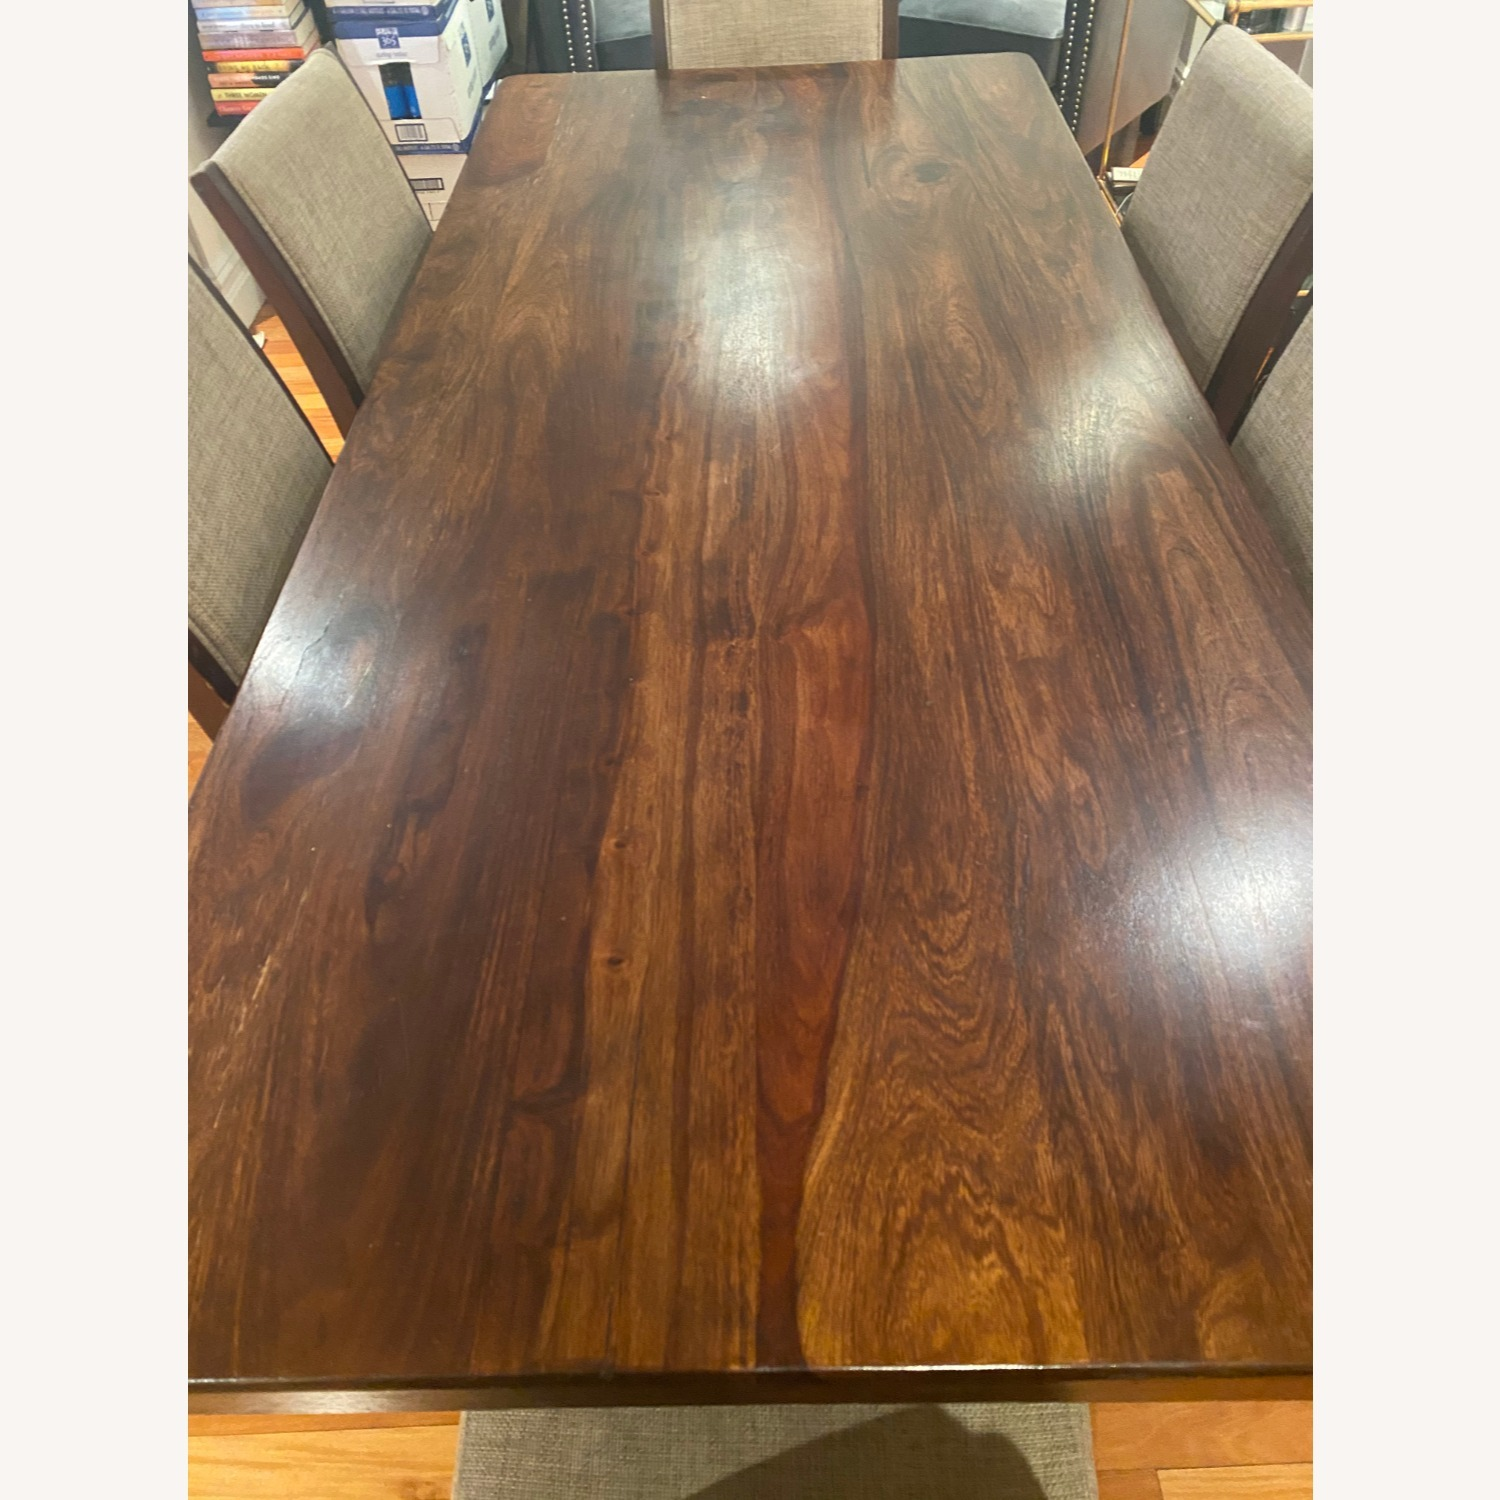 Pier 1 Imports Dark Wood Dining Table, Seats 6 - image-6